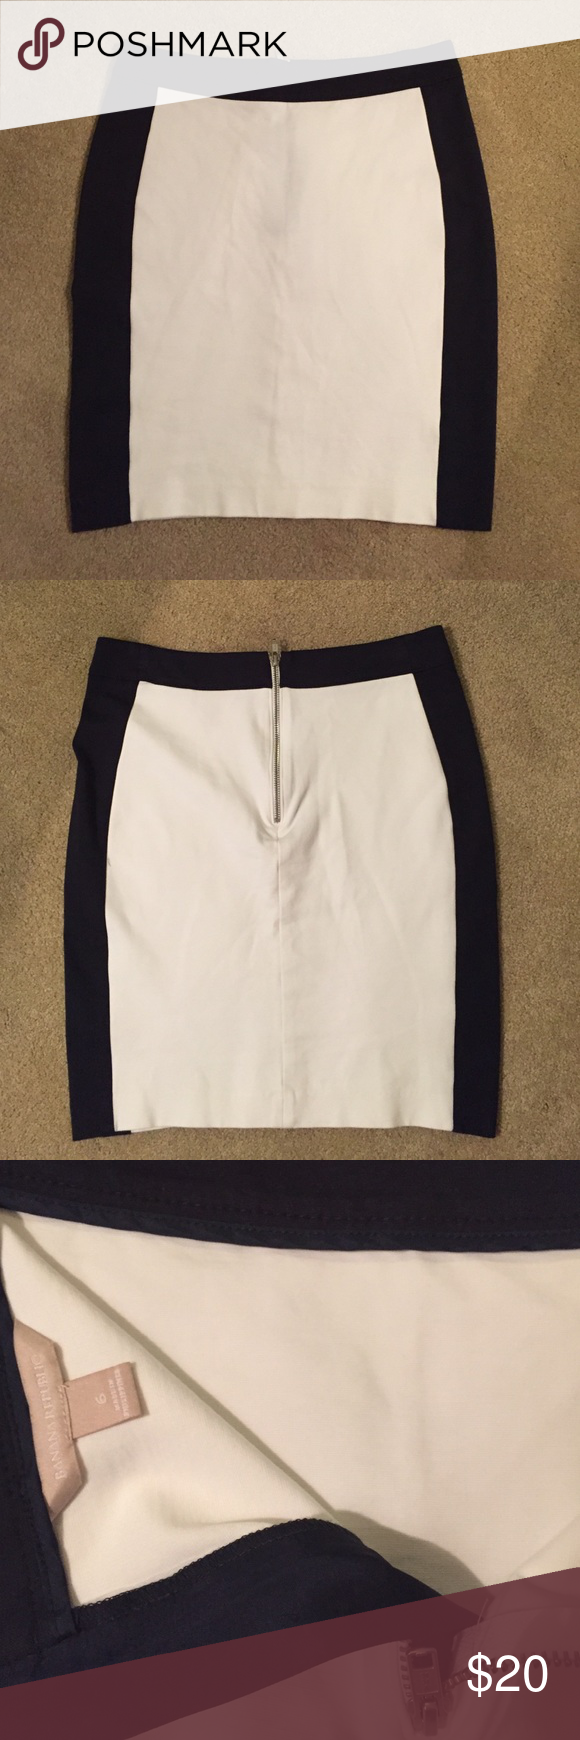 Banana Republic size 6 skirt NWOT Banana Republic size 6 black and white skirt. Pencil skirt with zipper in back. NWOT! Very cute! 19' length, 17 3/4' hip (approx.) Banana Republic Skirts Pencil